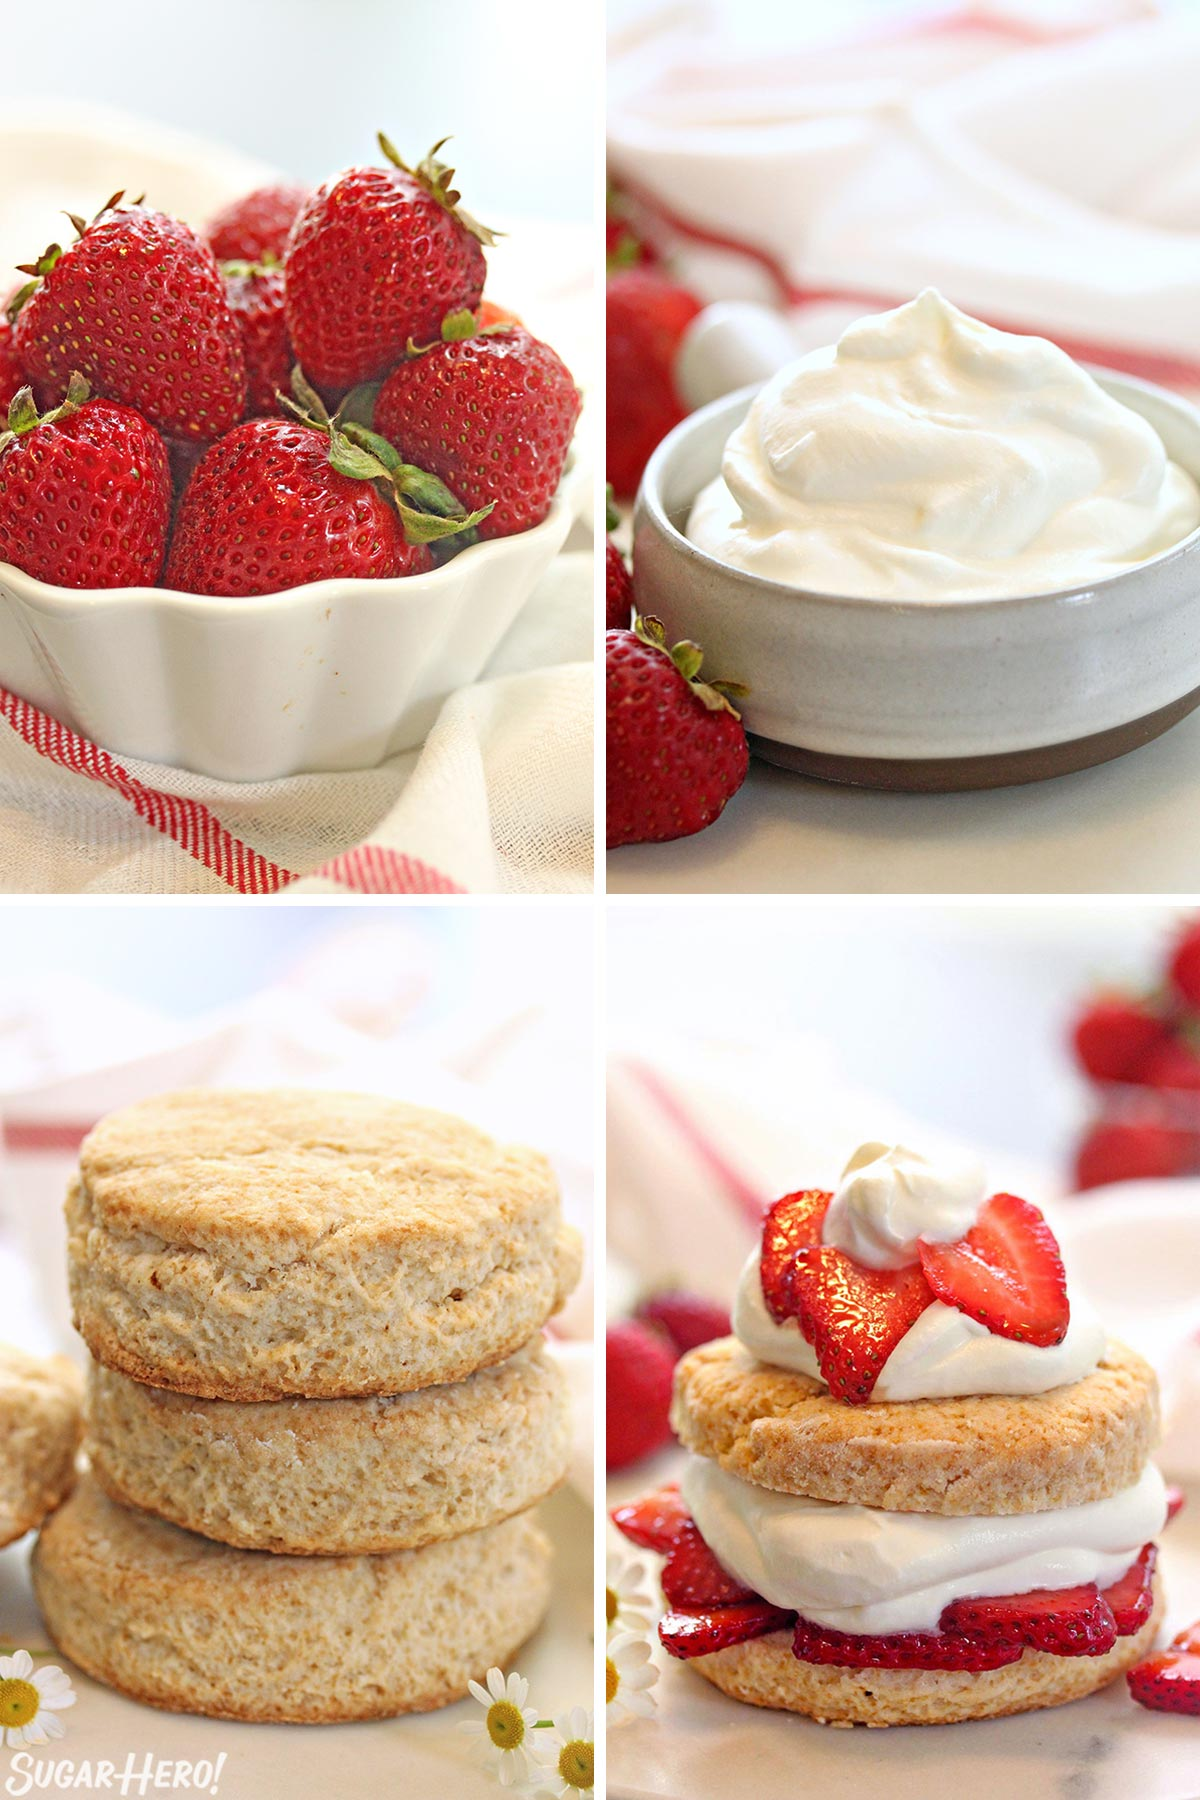 Grown-Up Strawberry Shortcake | From SugarHero.com